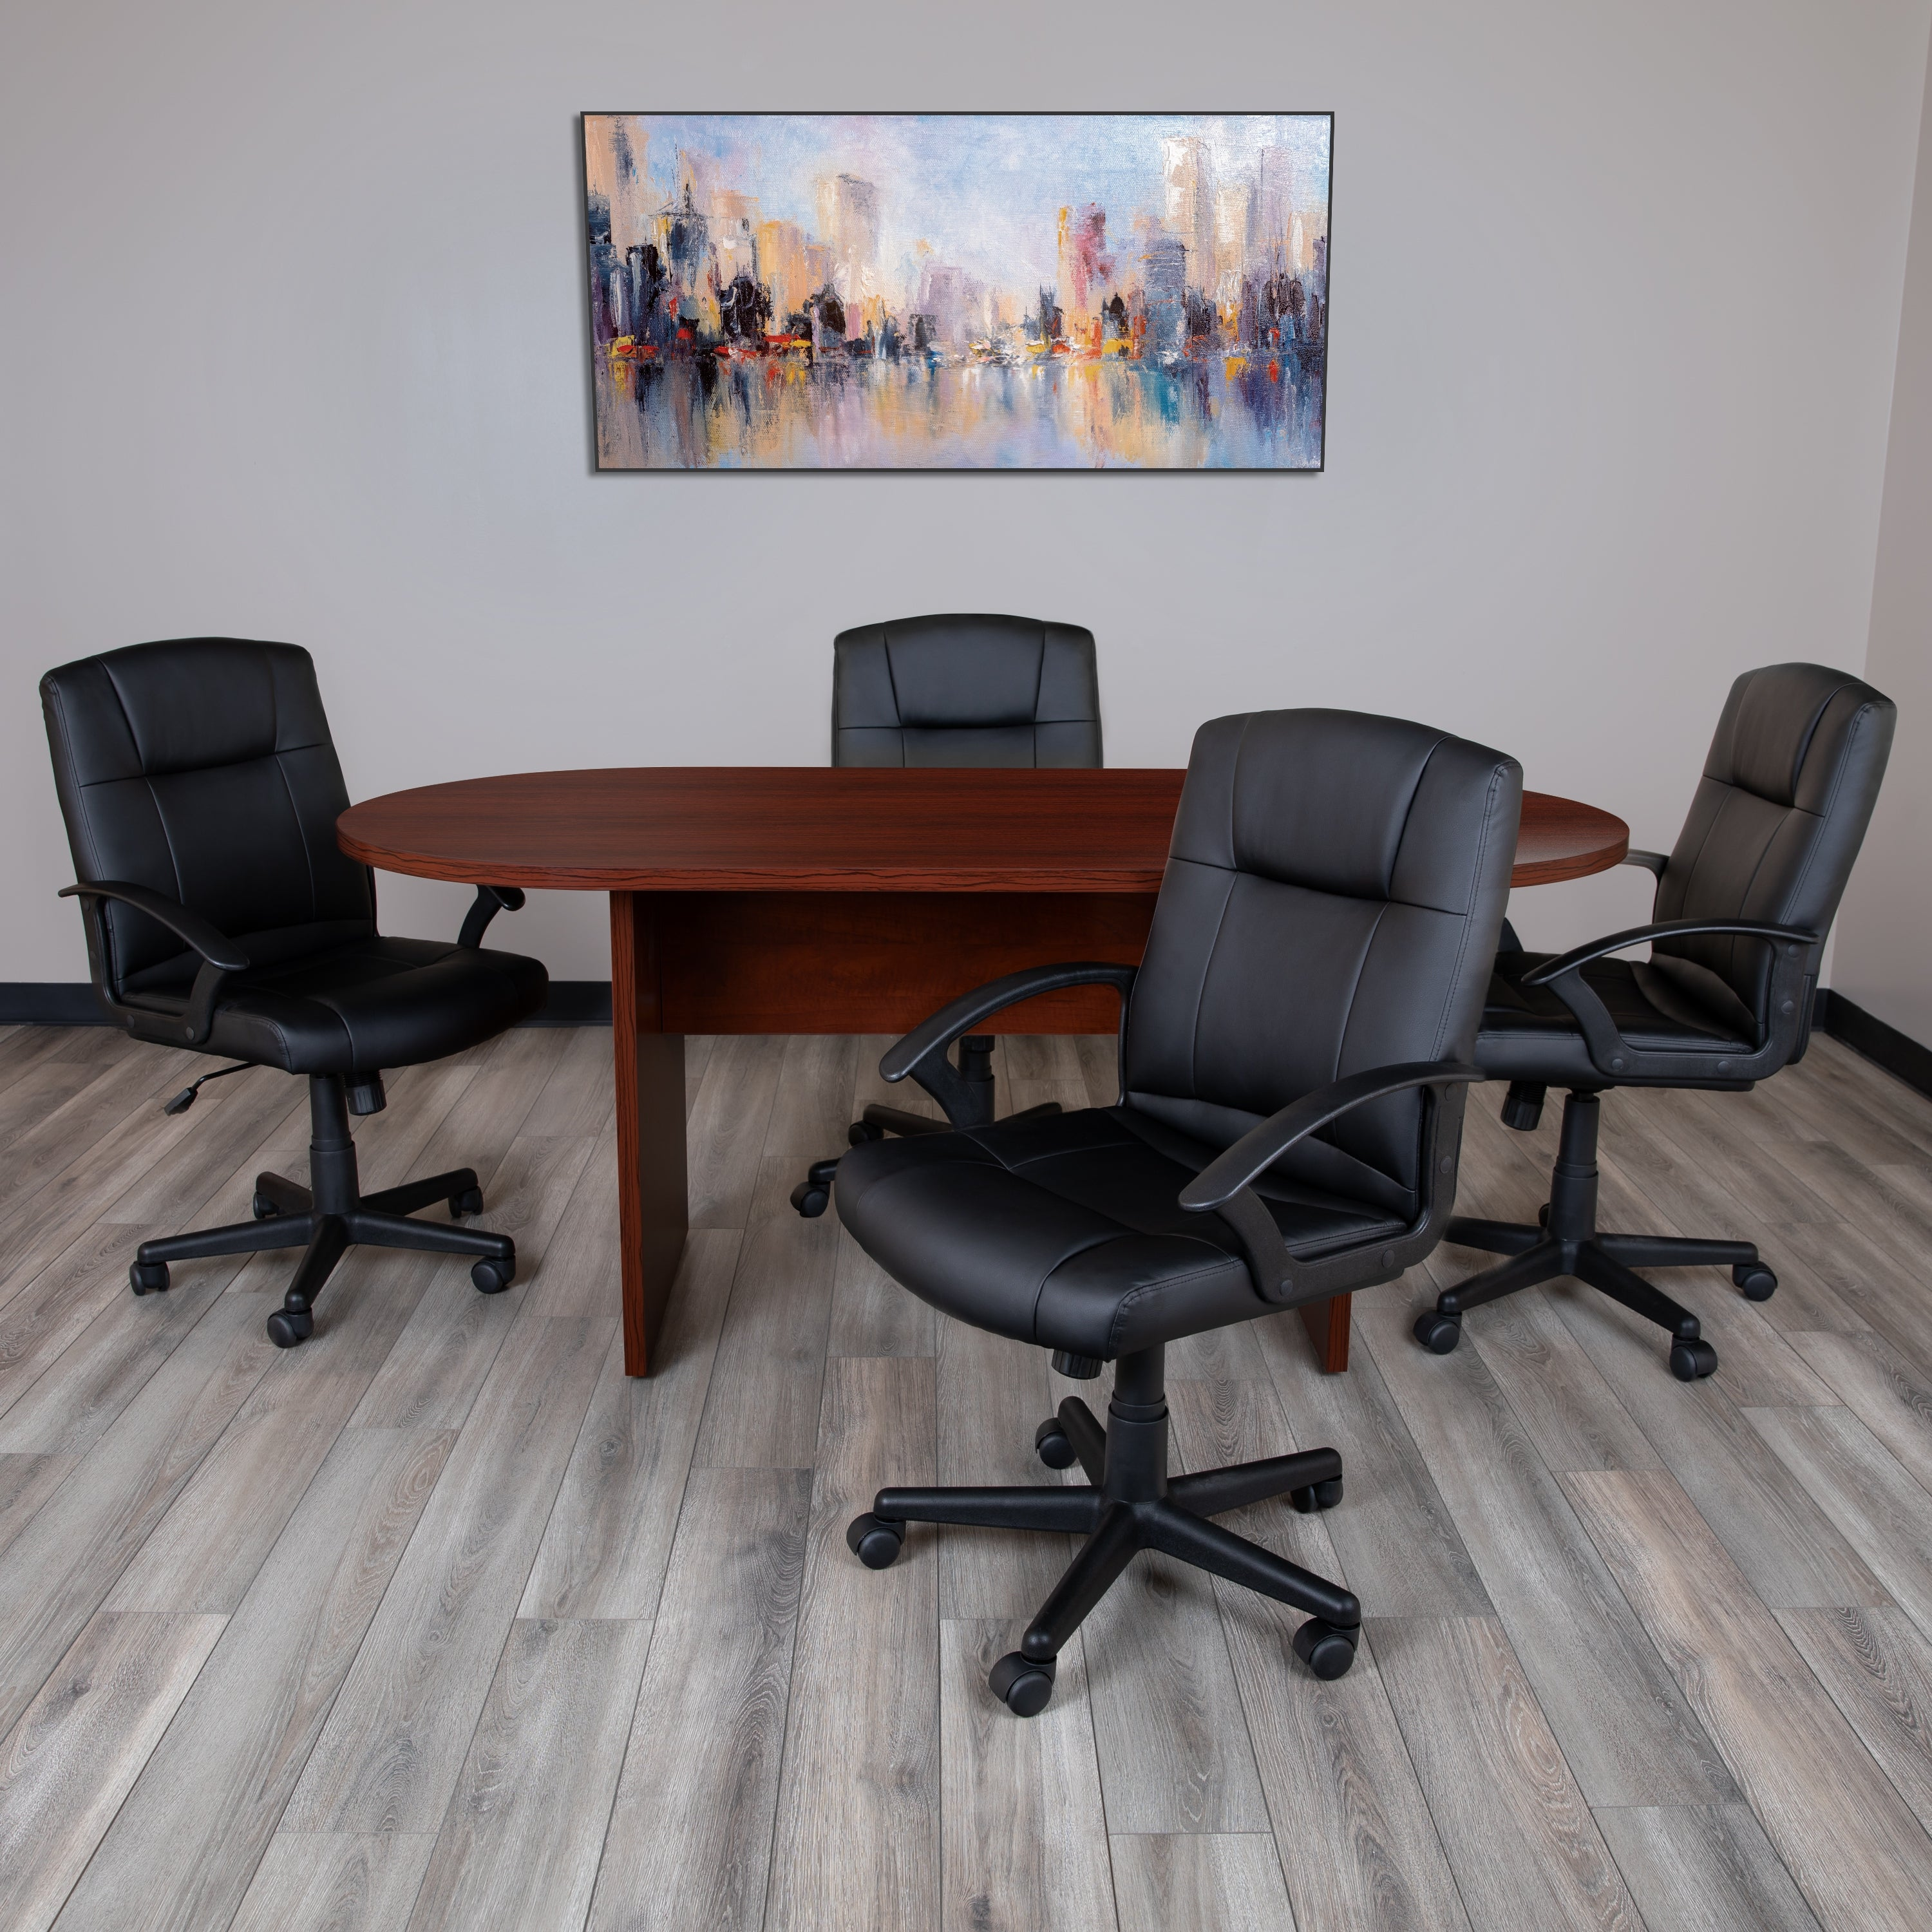 4 Foot (4 inch) Classic Oval Conference Table - Meeting Table